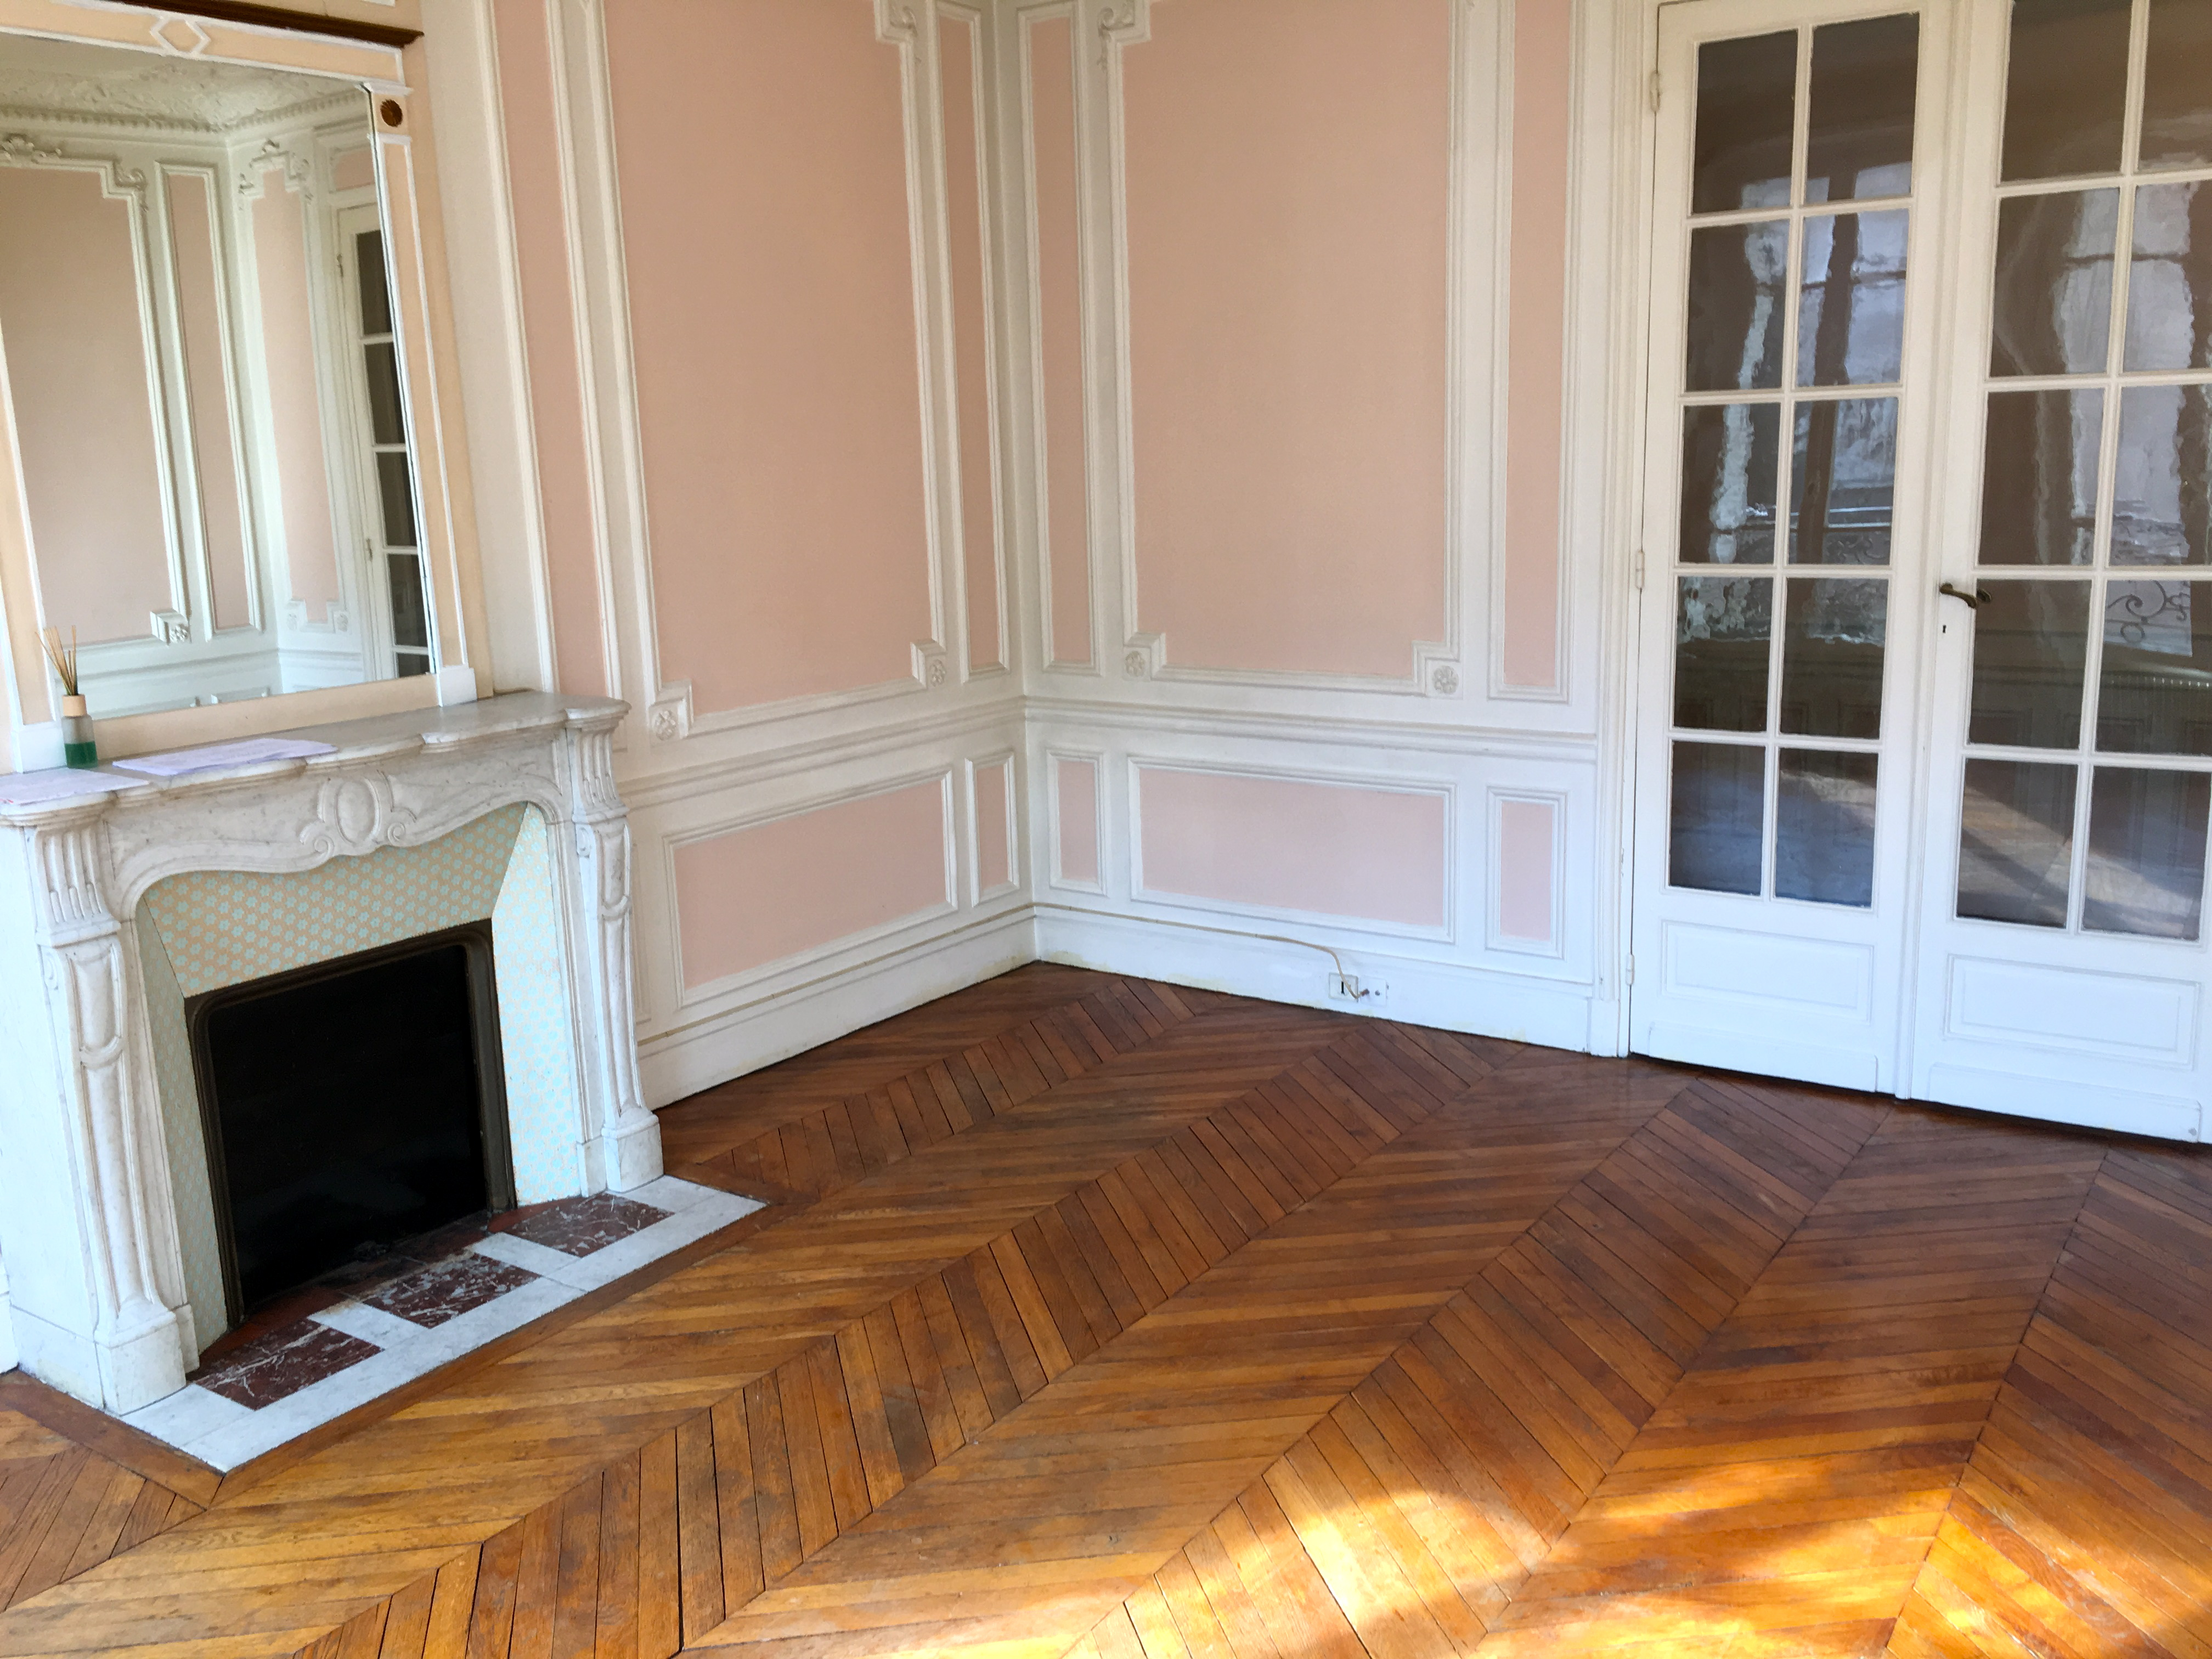 Location appartement paris trocad ro mathias cayron - Appartement atypique paris location ...